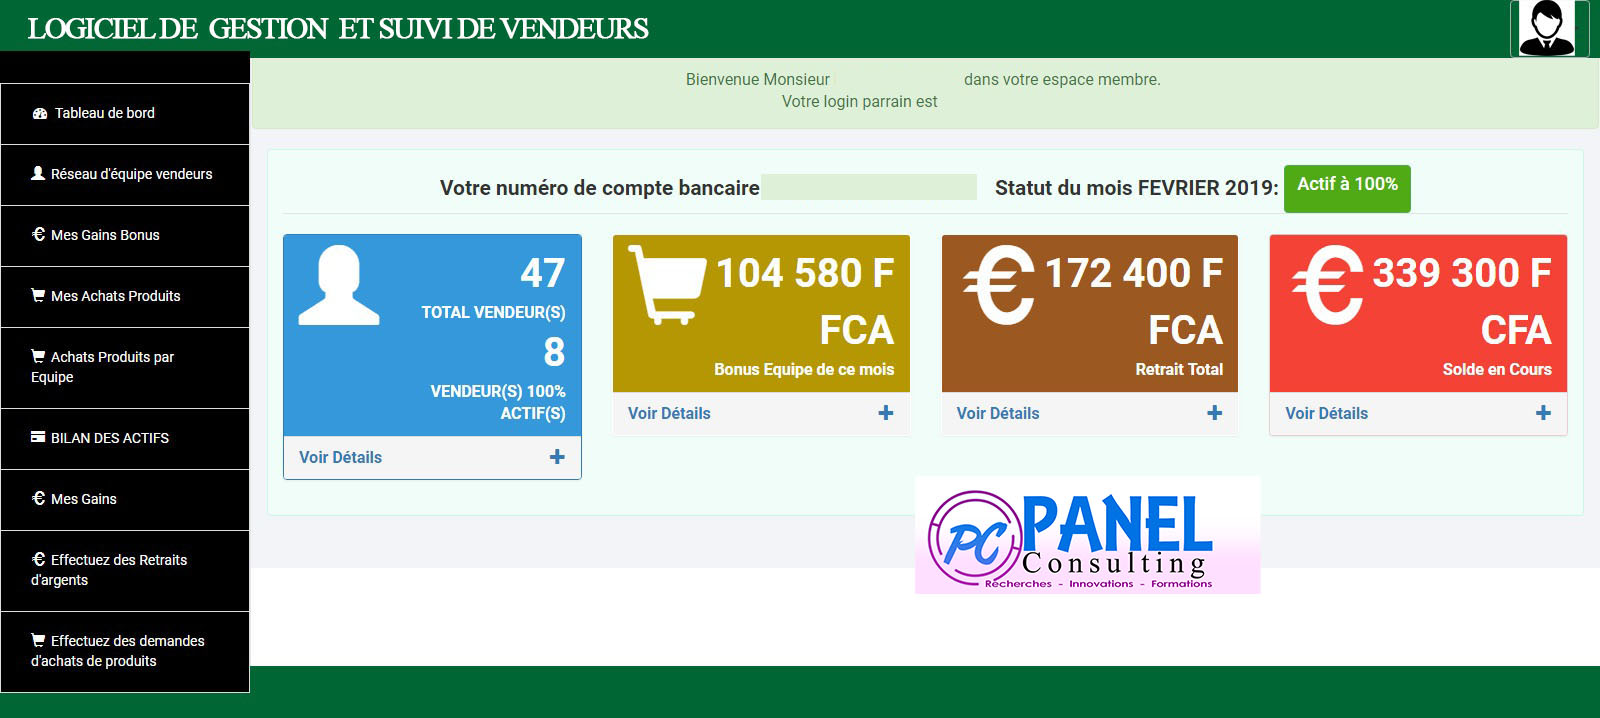 tableau-bord-application-web-gestion-vente-panel-consulting.jpg-panel-consulting